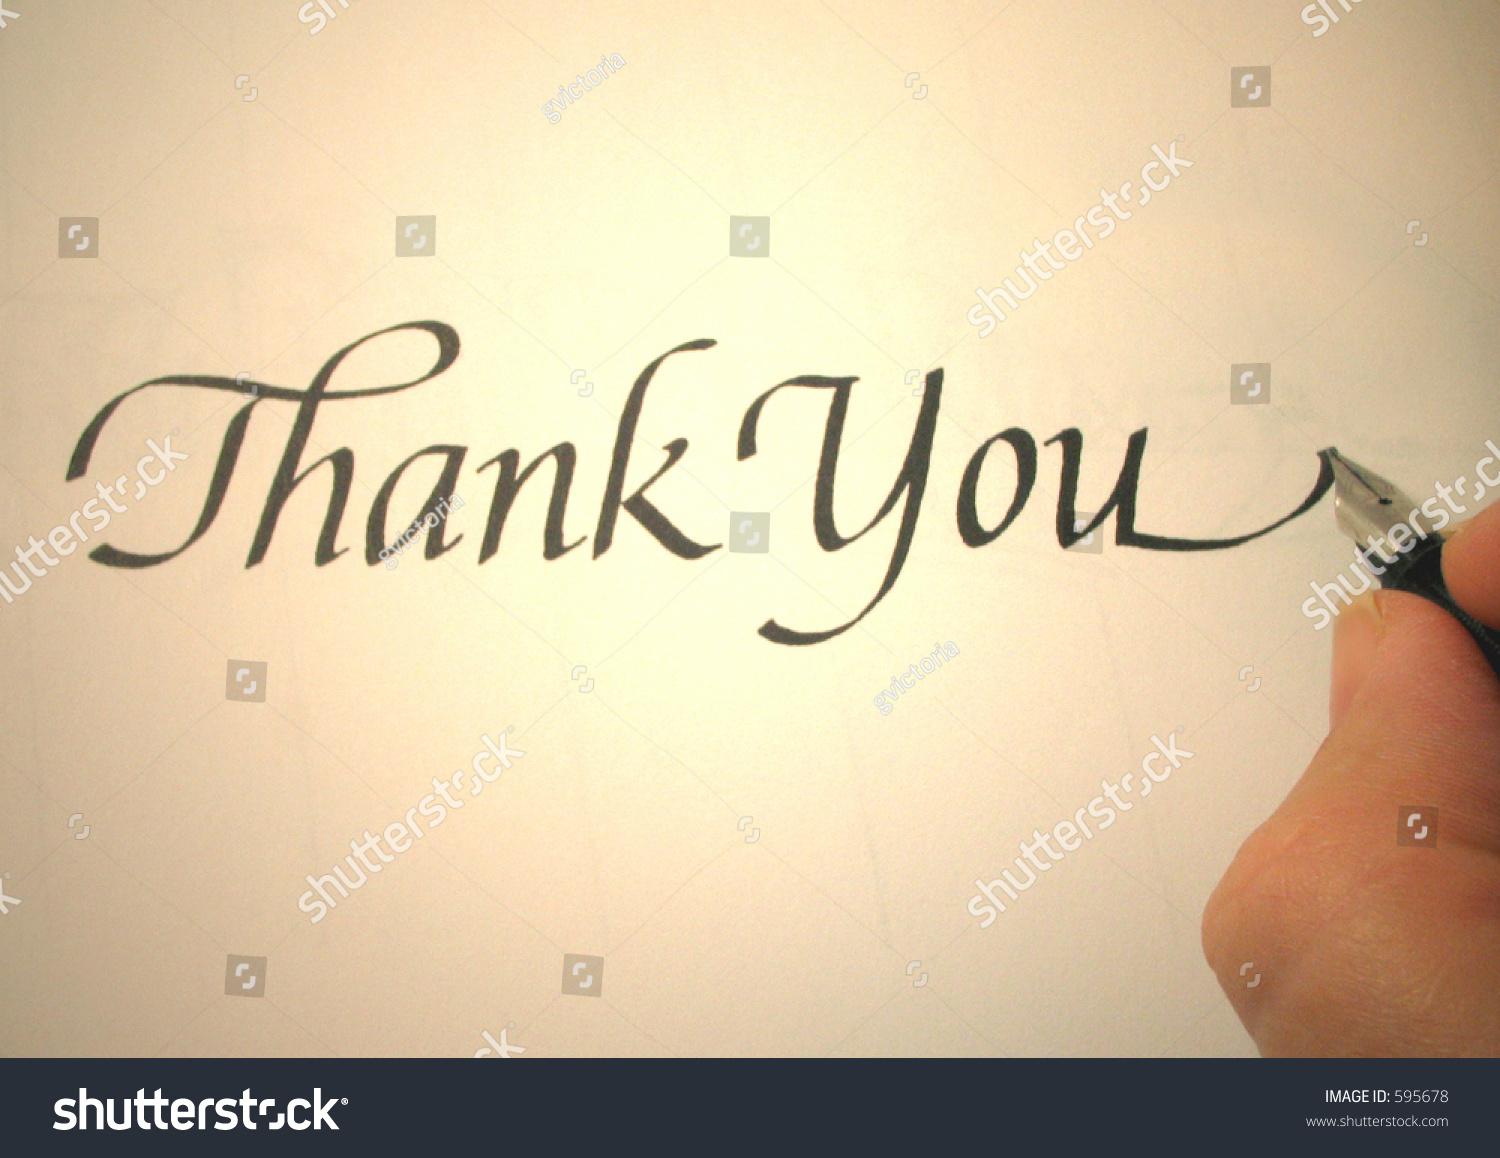 Person writing thank you in calligraphy stock photo 595678 Thank you in calligraphy writing